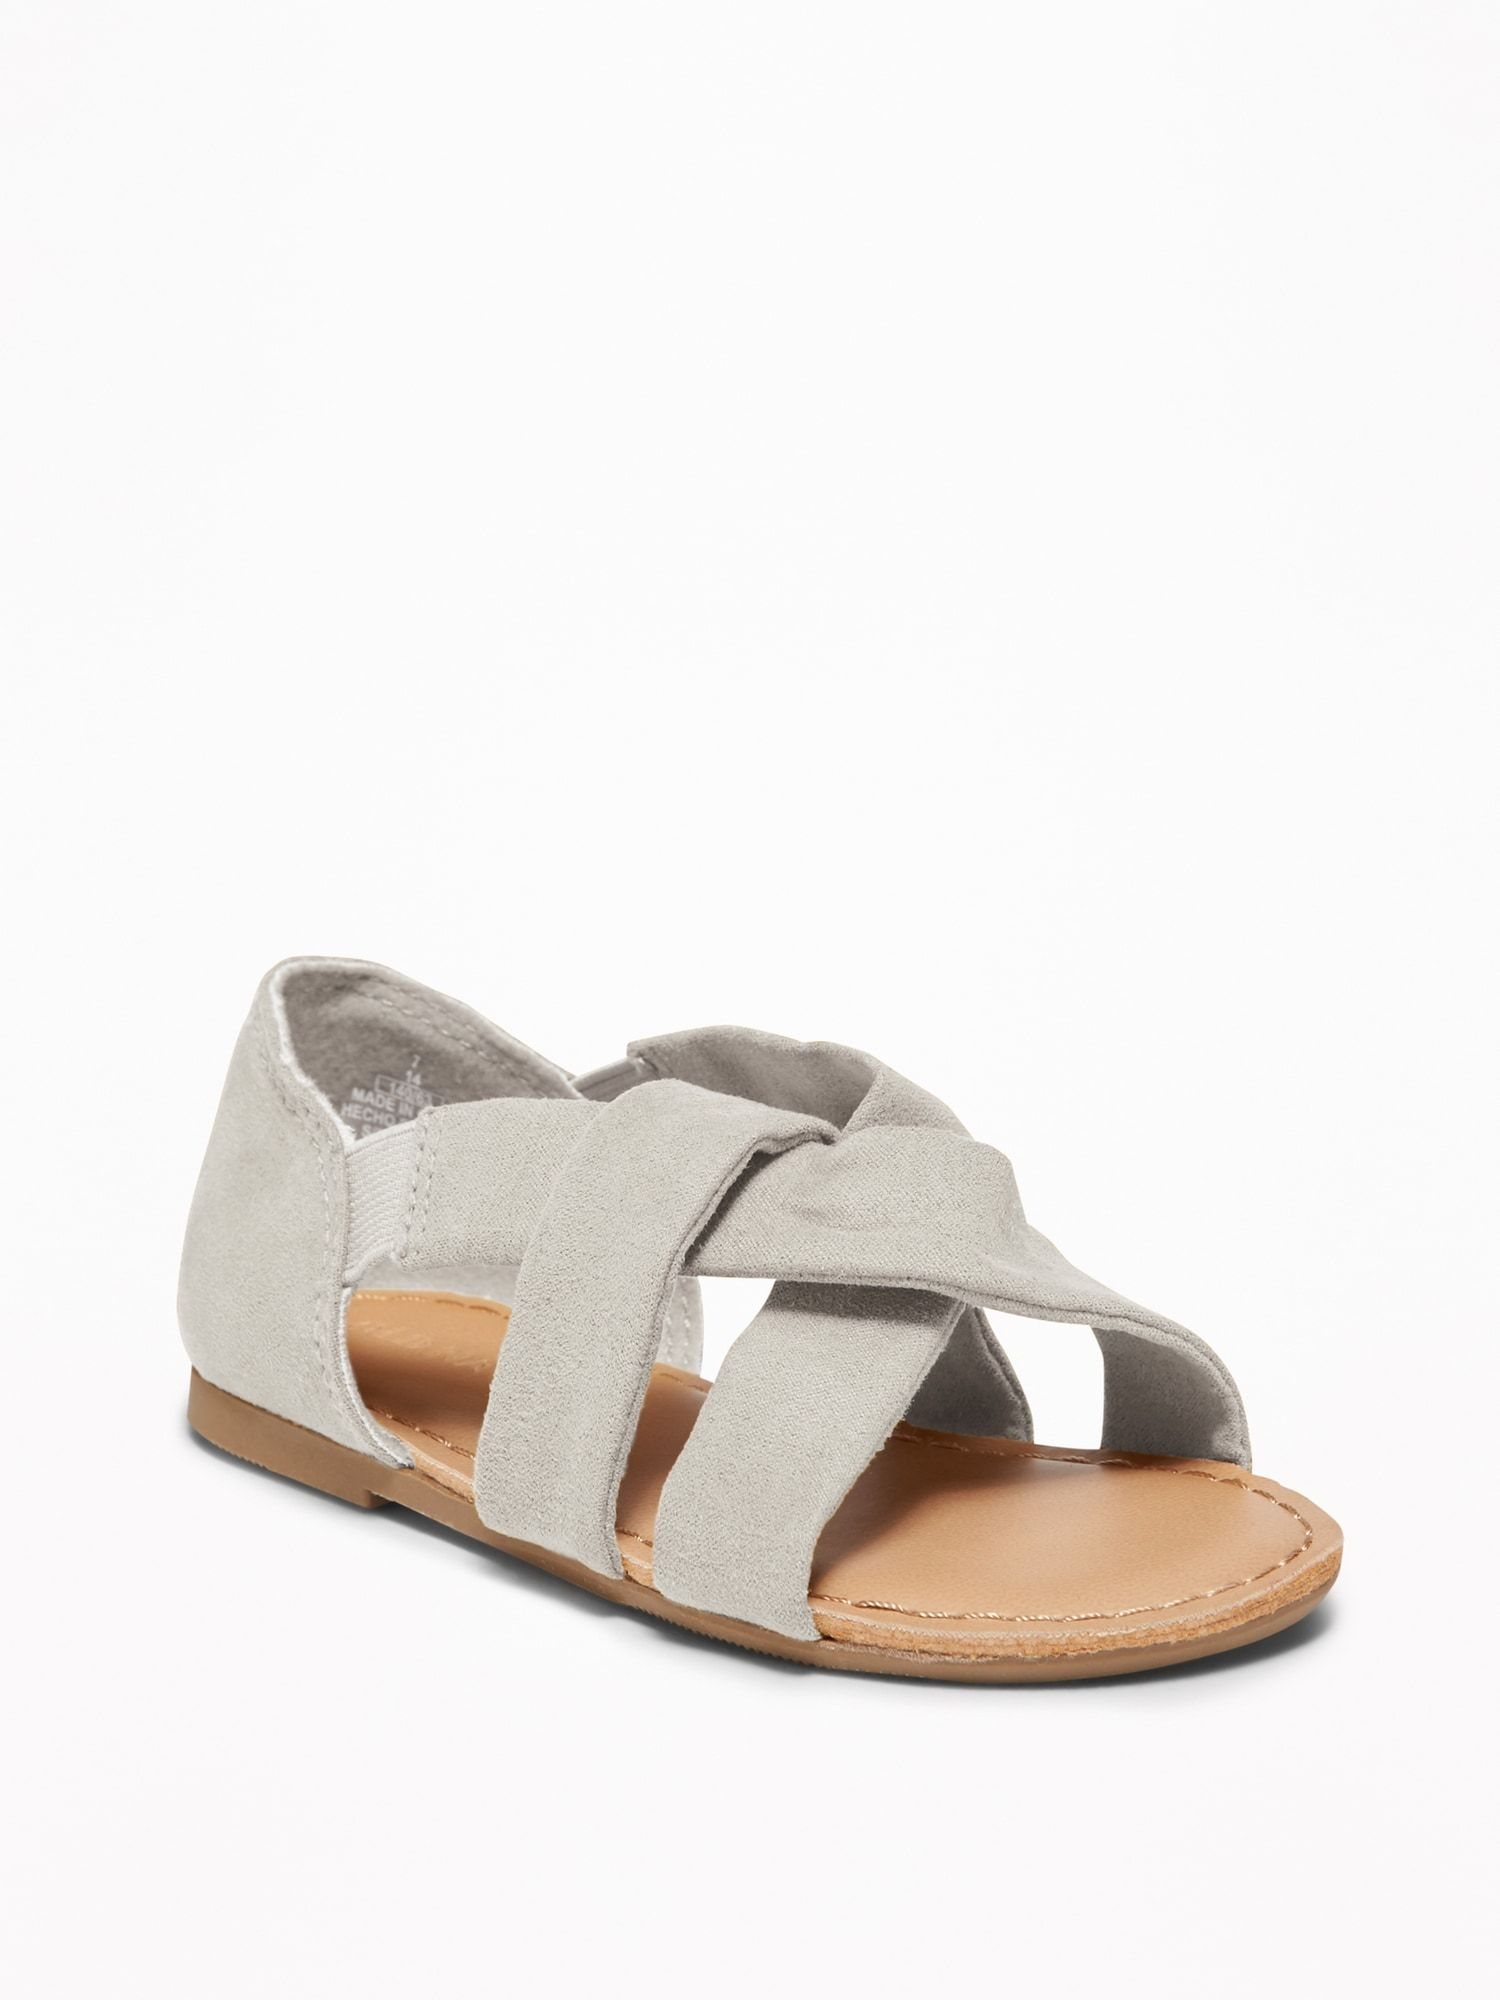 667d5d6518ac Slouchy Faux-Suede Cross-Strap Sandals For Toddler Girls